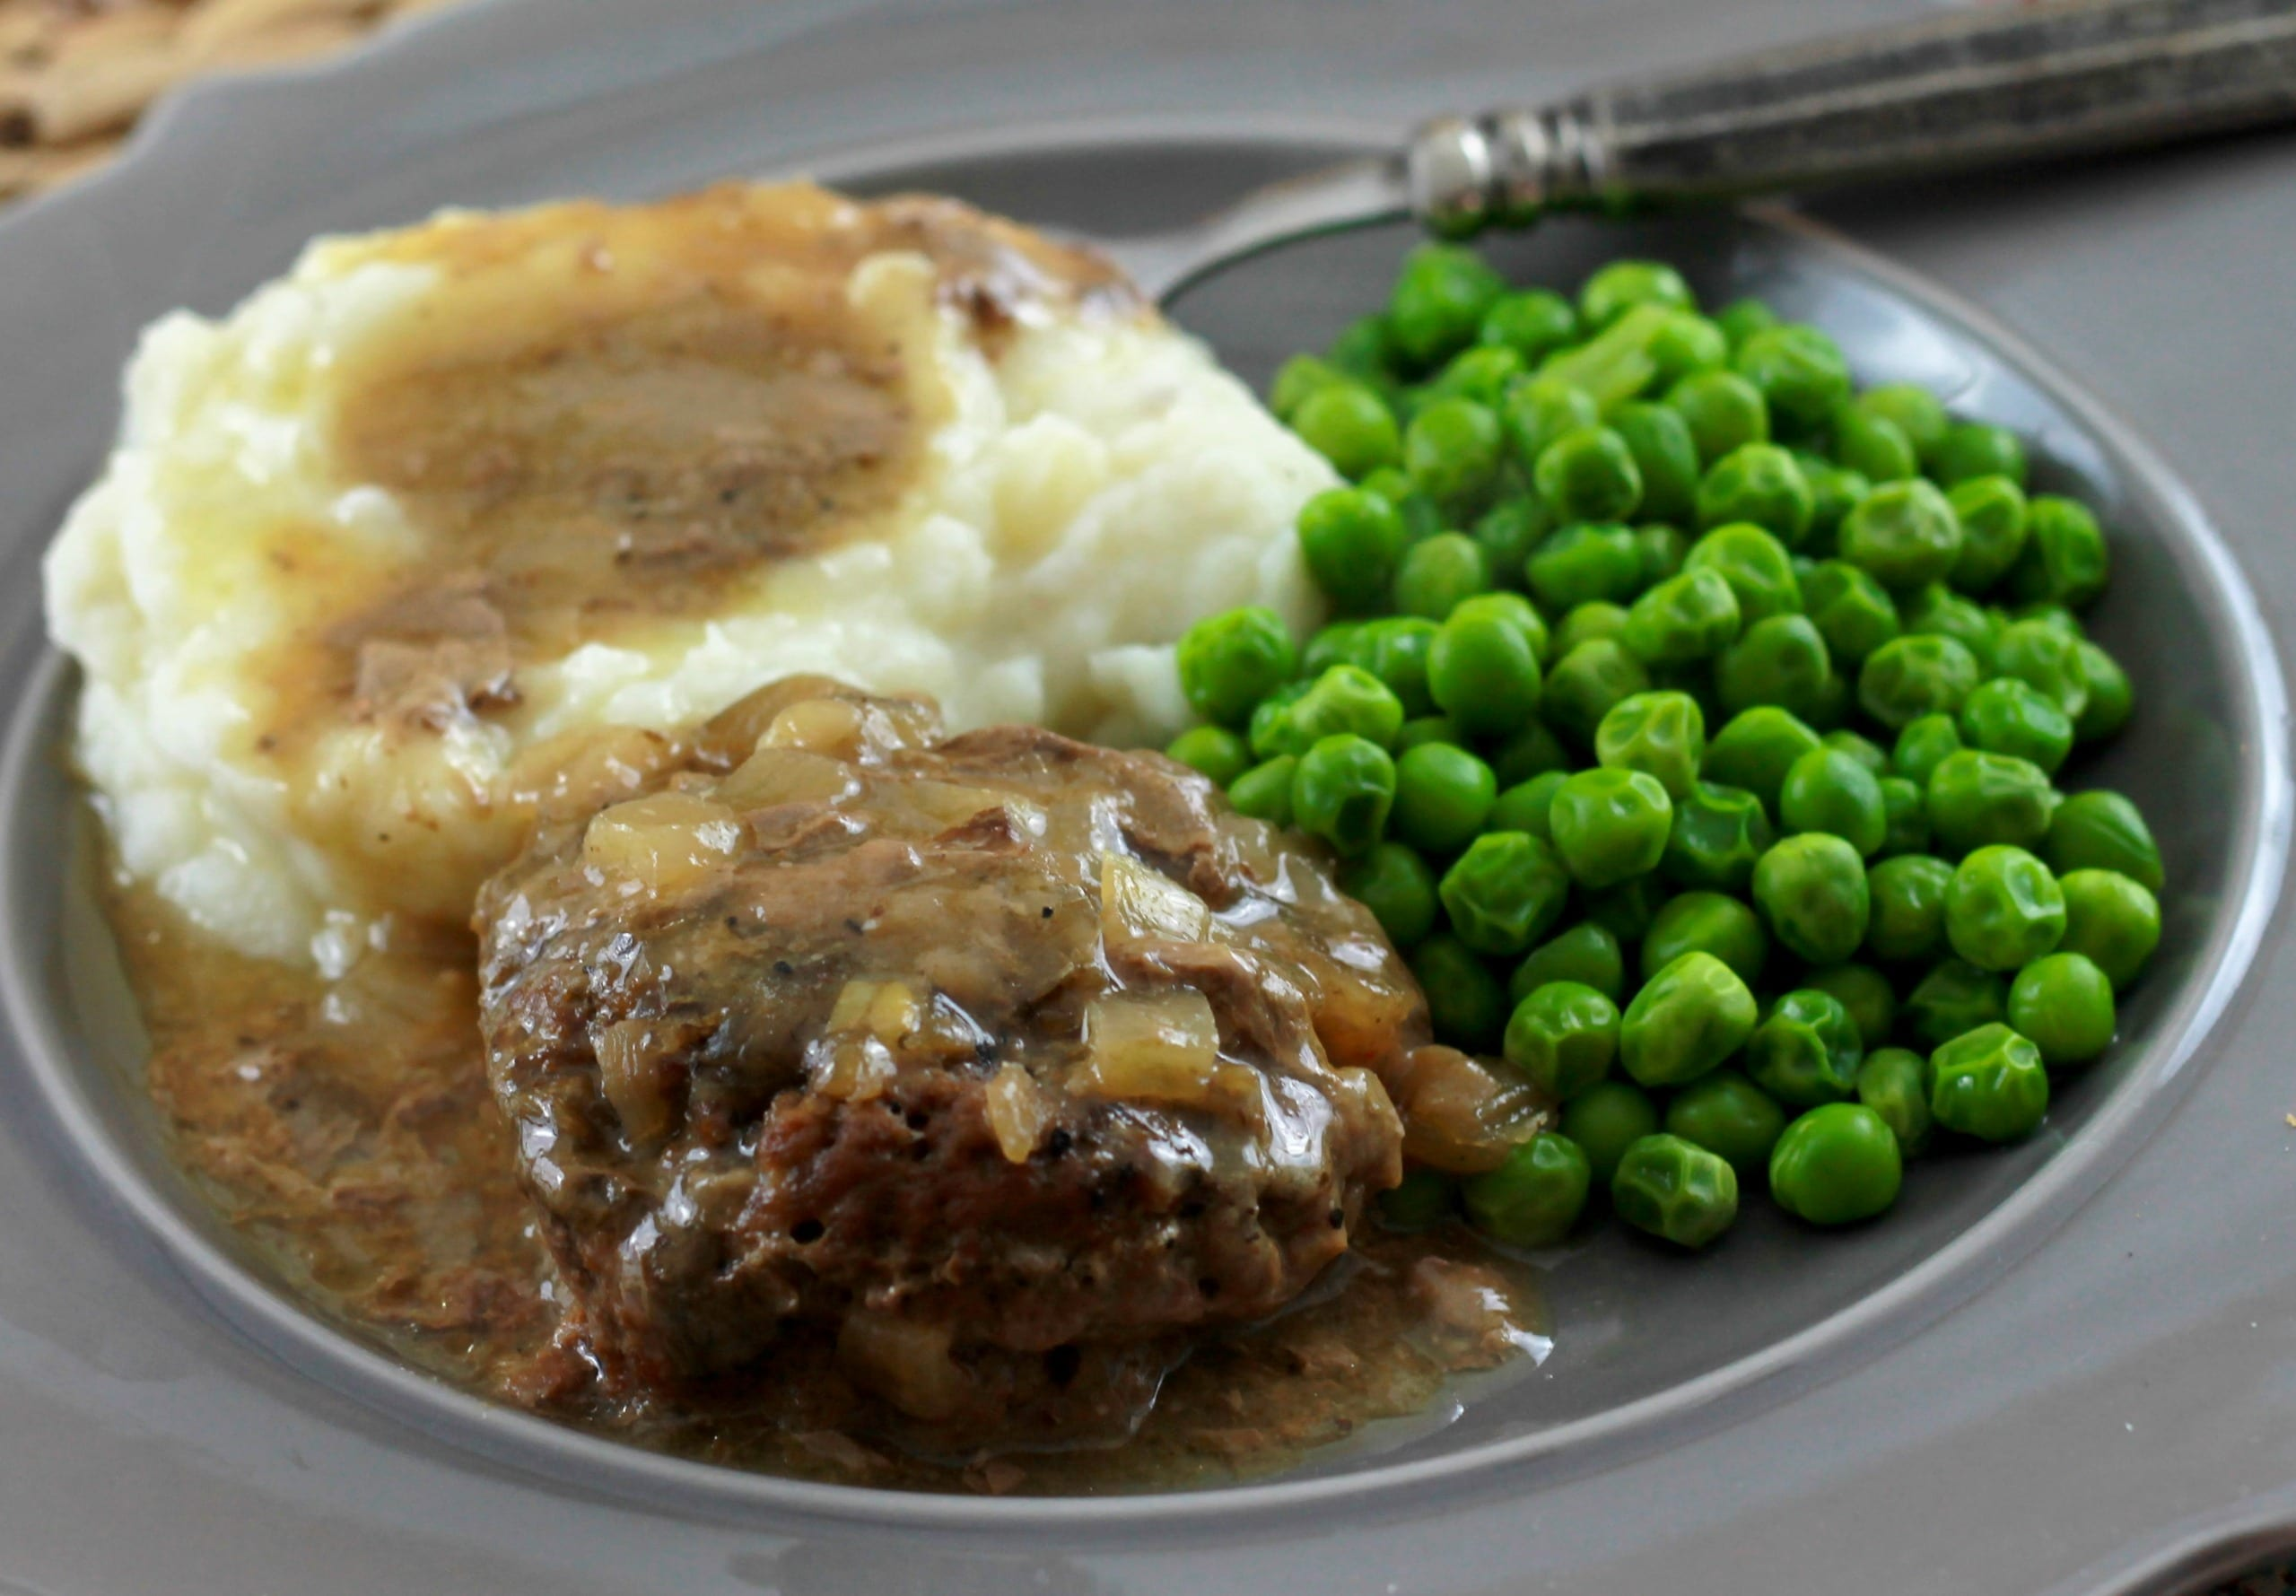 Salisbury Steak A Healthy Meal The Whole Family Will Love 5